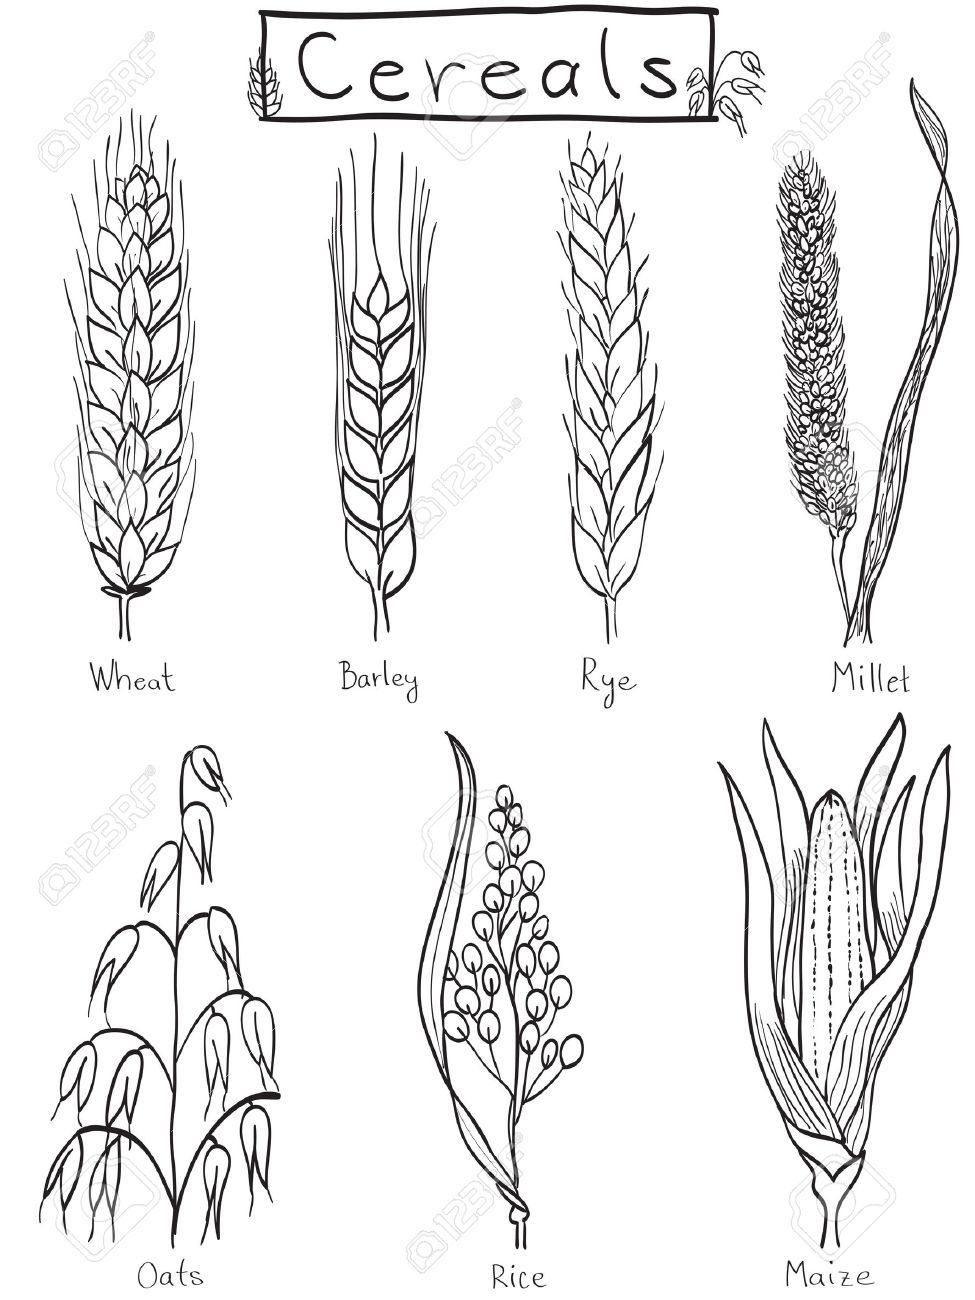 Cereals hand-drawn illustration - wheat, barley, rye, millet, oat, rice, maize Stock Vector - 13563320